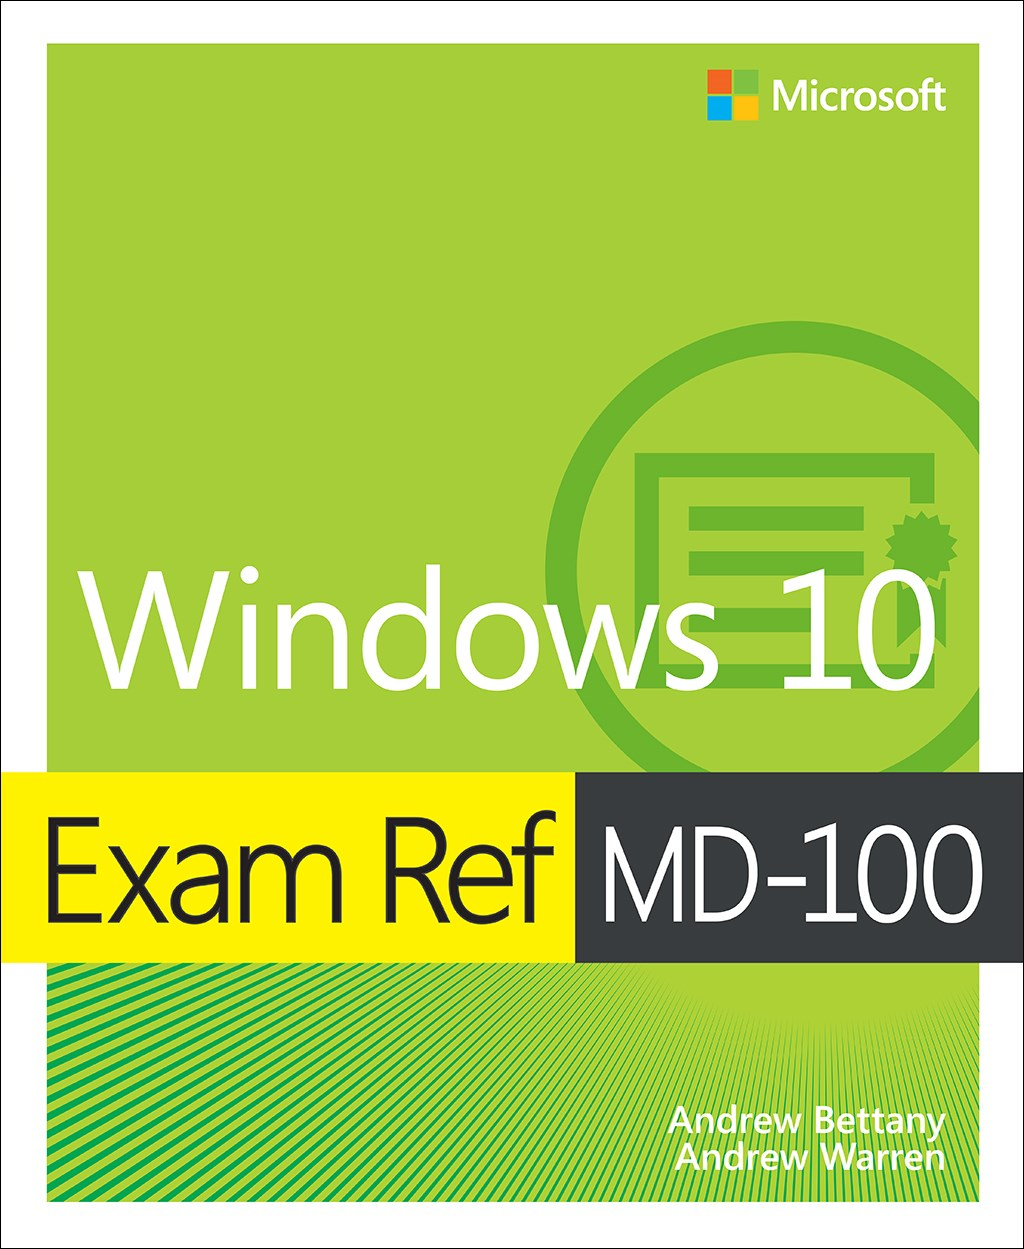 Exam Ref MD-100 Windows 10